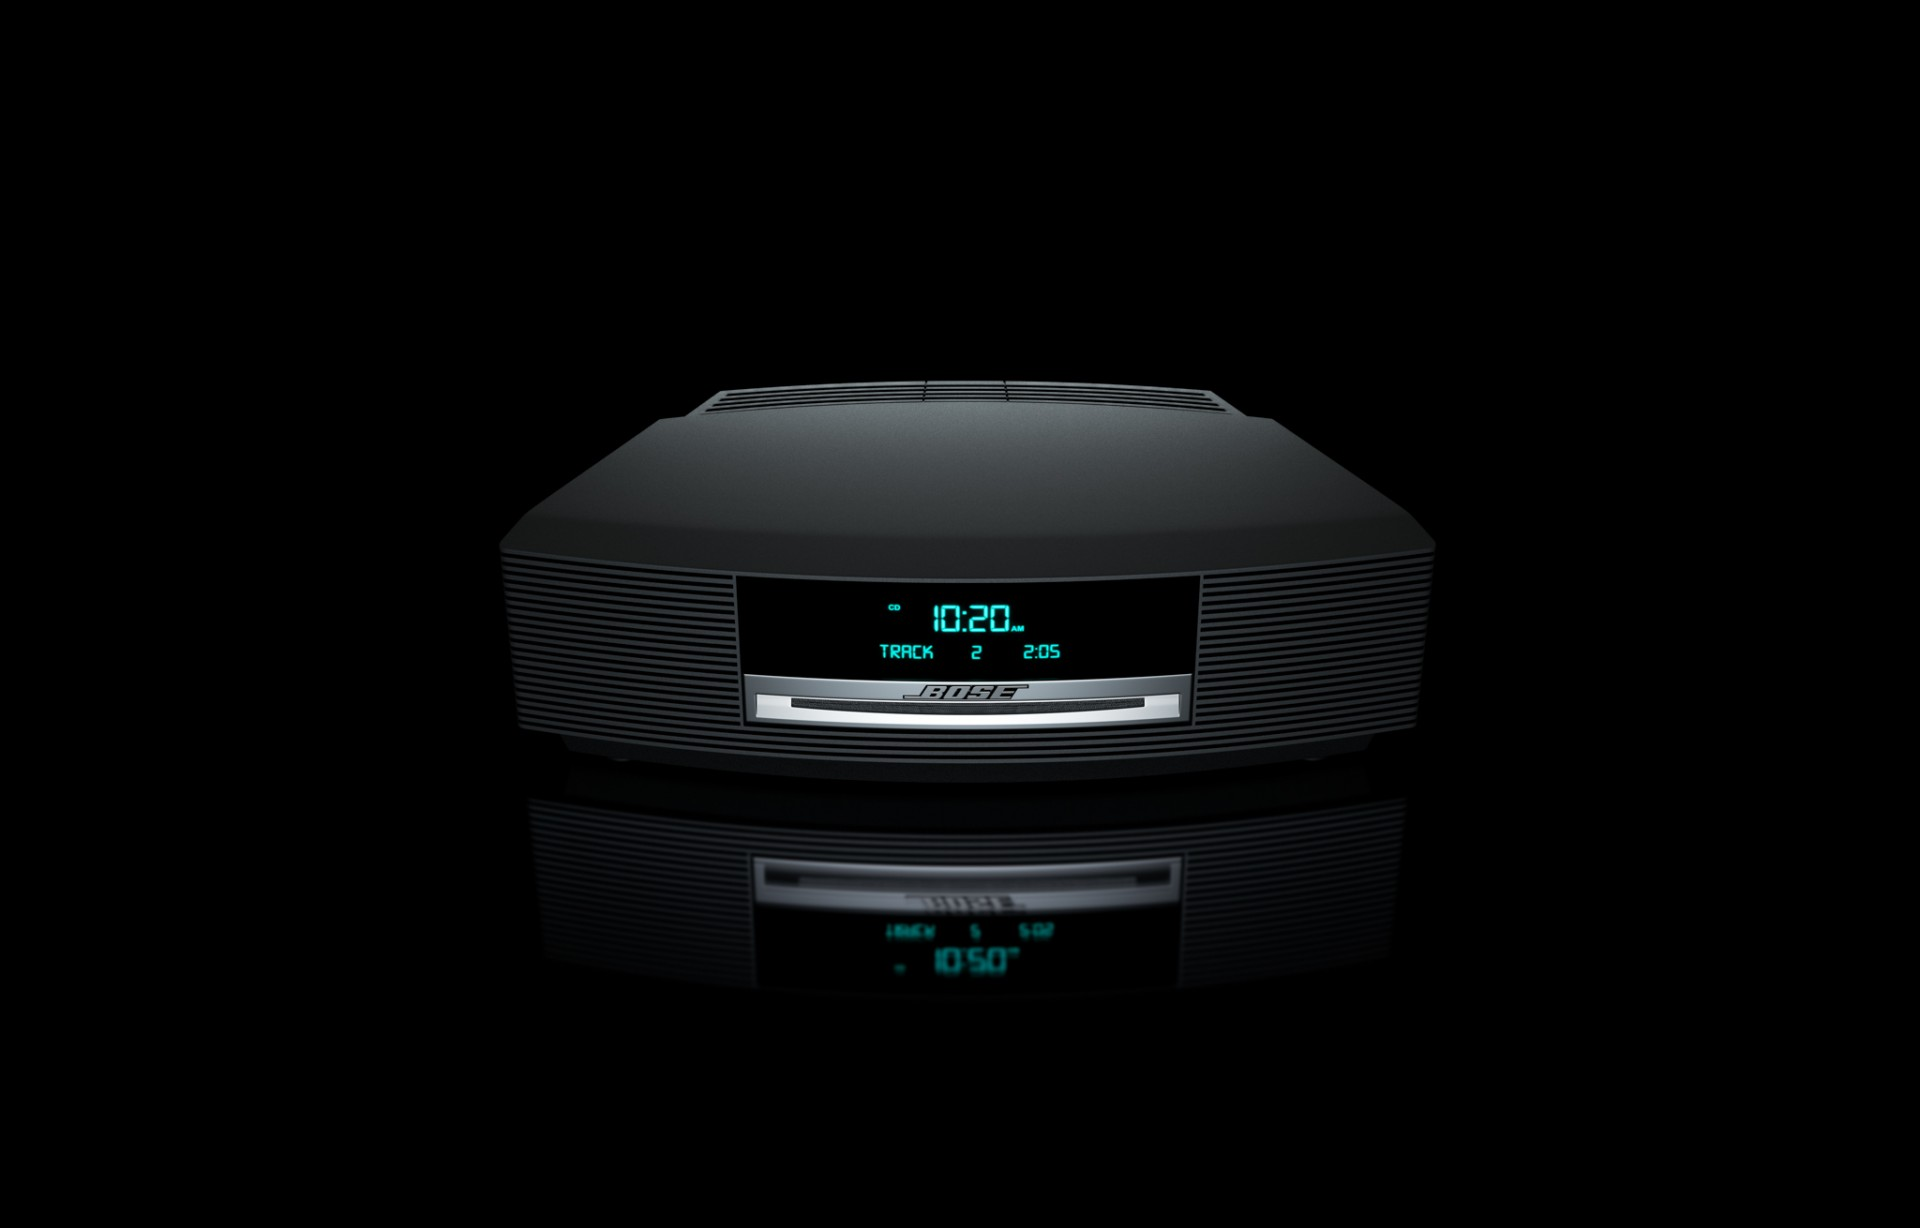 bose black dating site Jamo is a high-tech audio collaborative that crafts easy to use speakers that sound fantastic & accent your home decor shop audio & speaker equipment now.